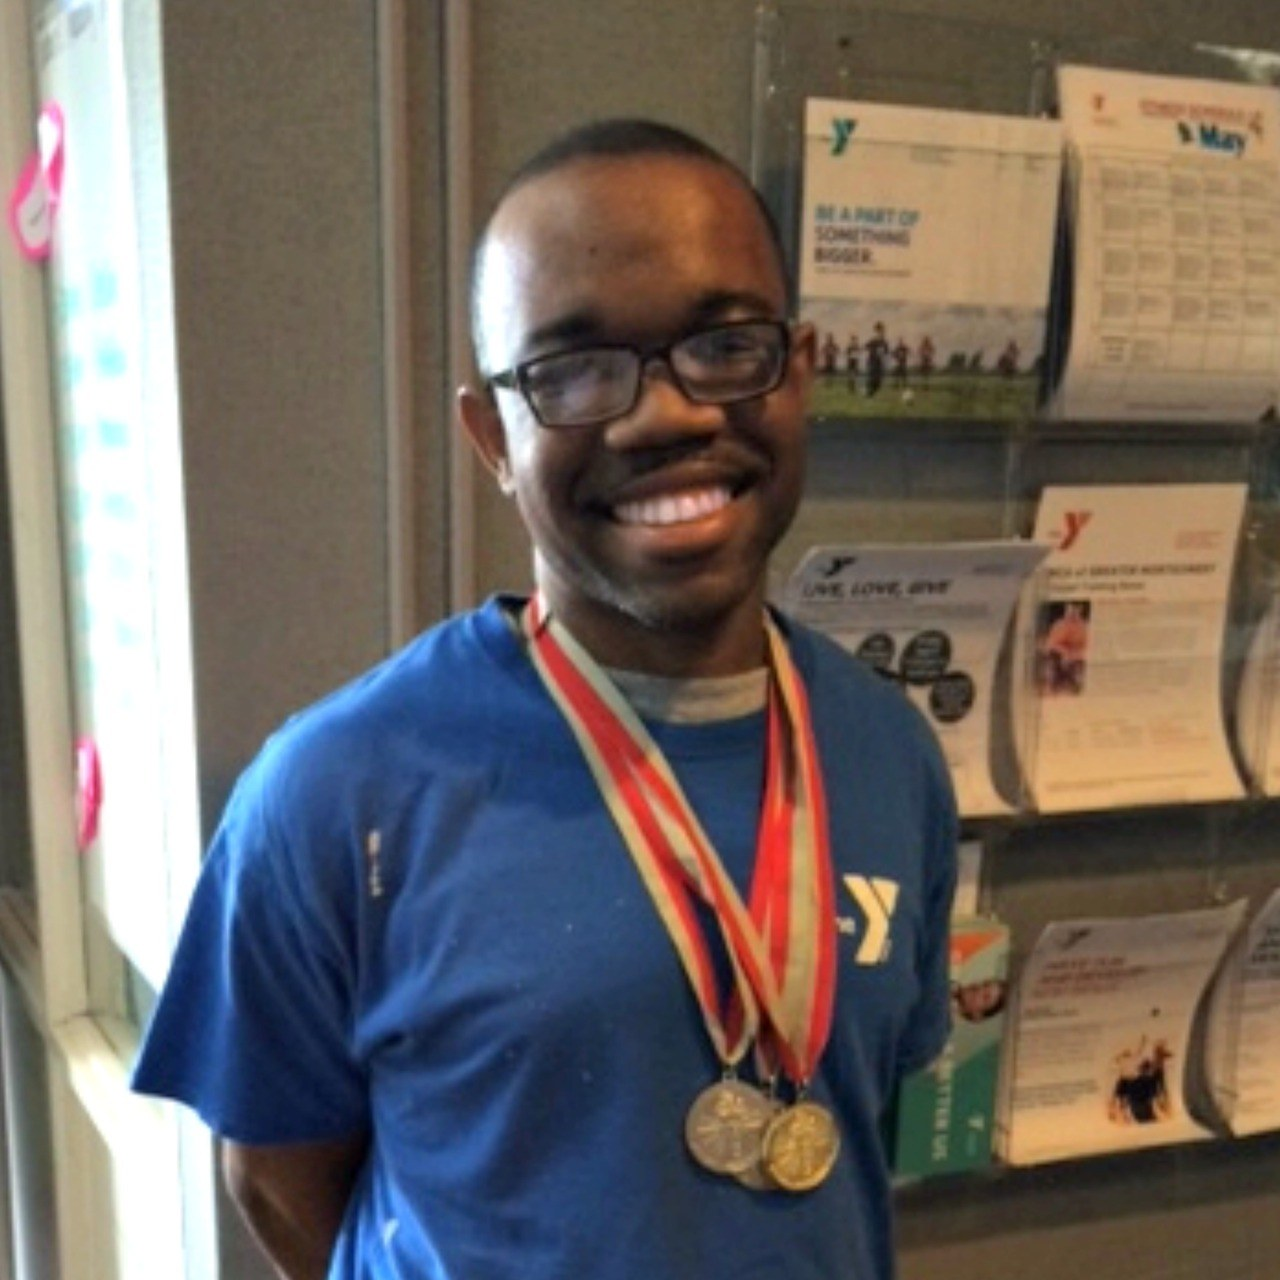 freddy pruitt special olympics athlete bring home medals to montgomery al